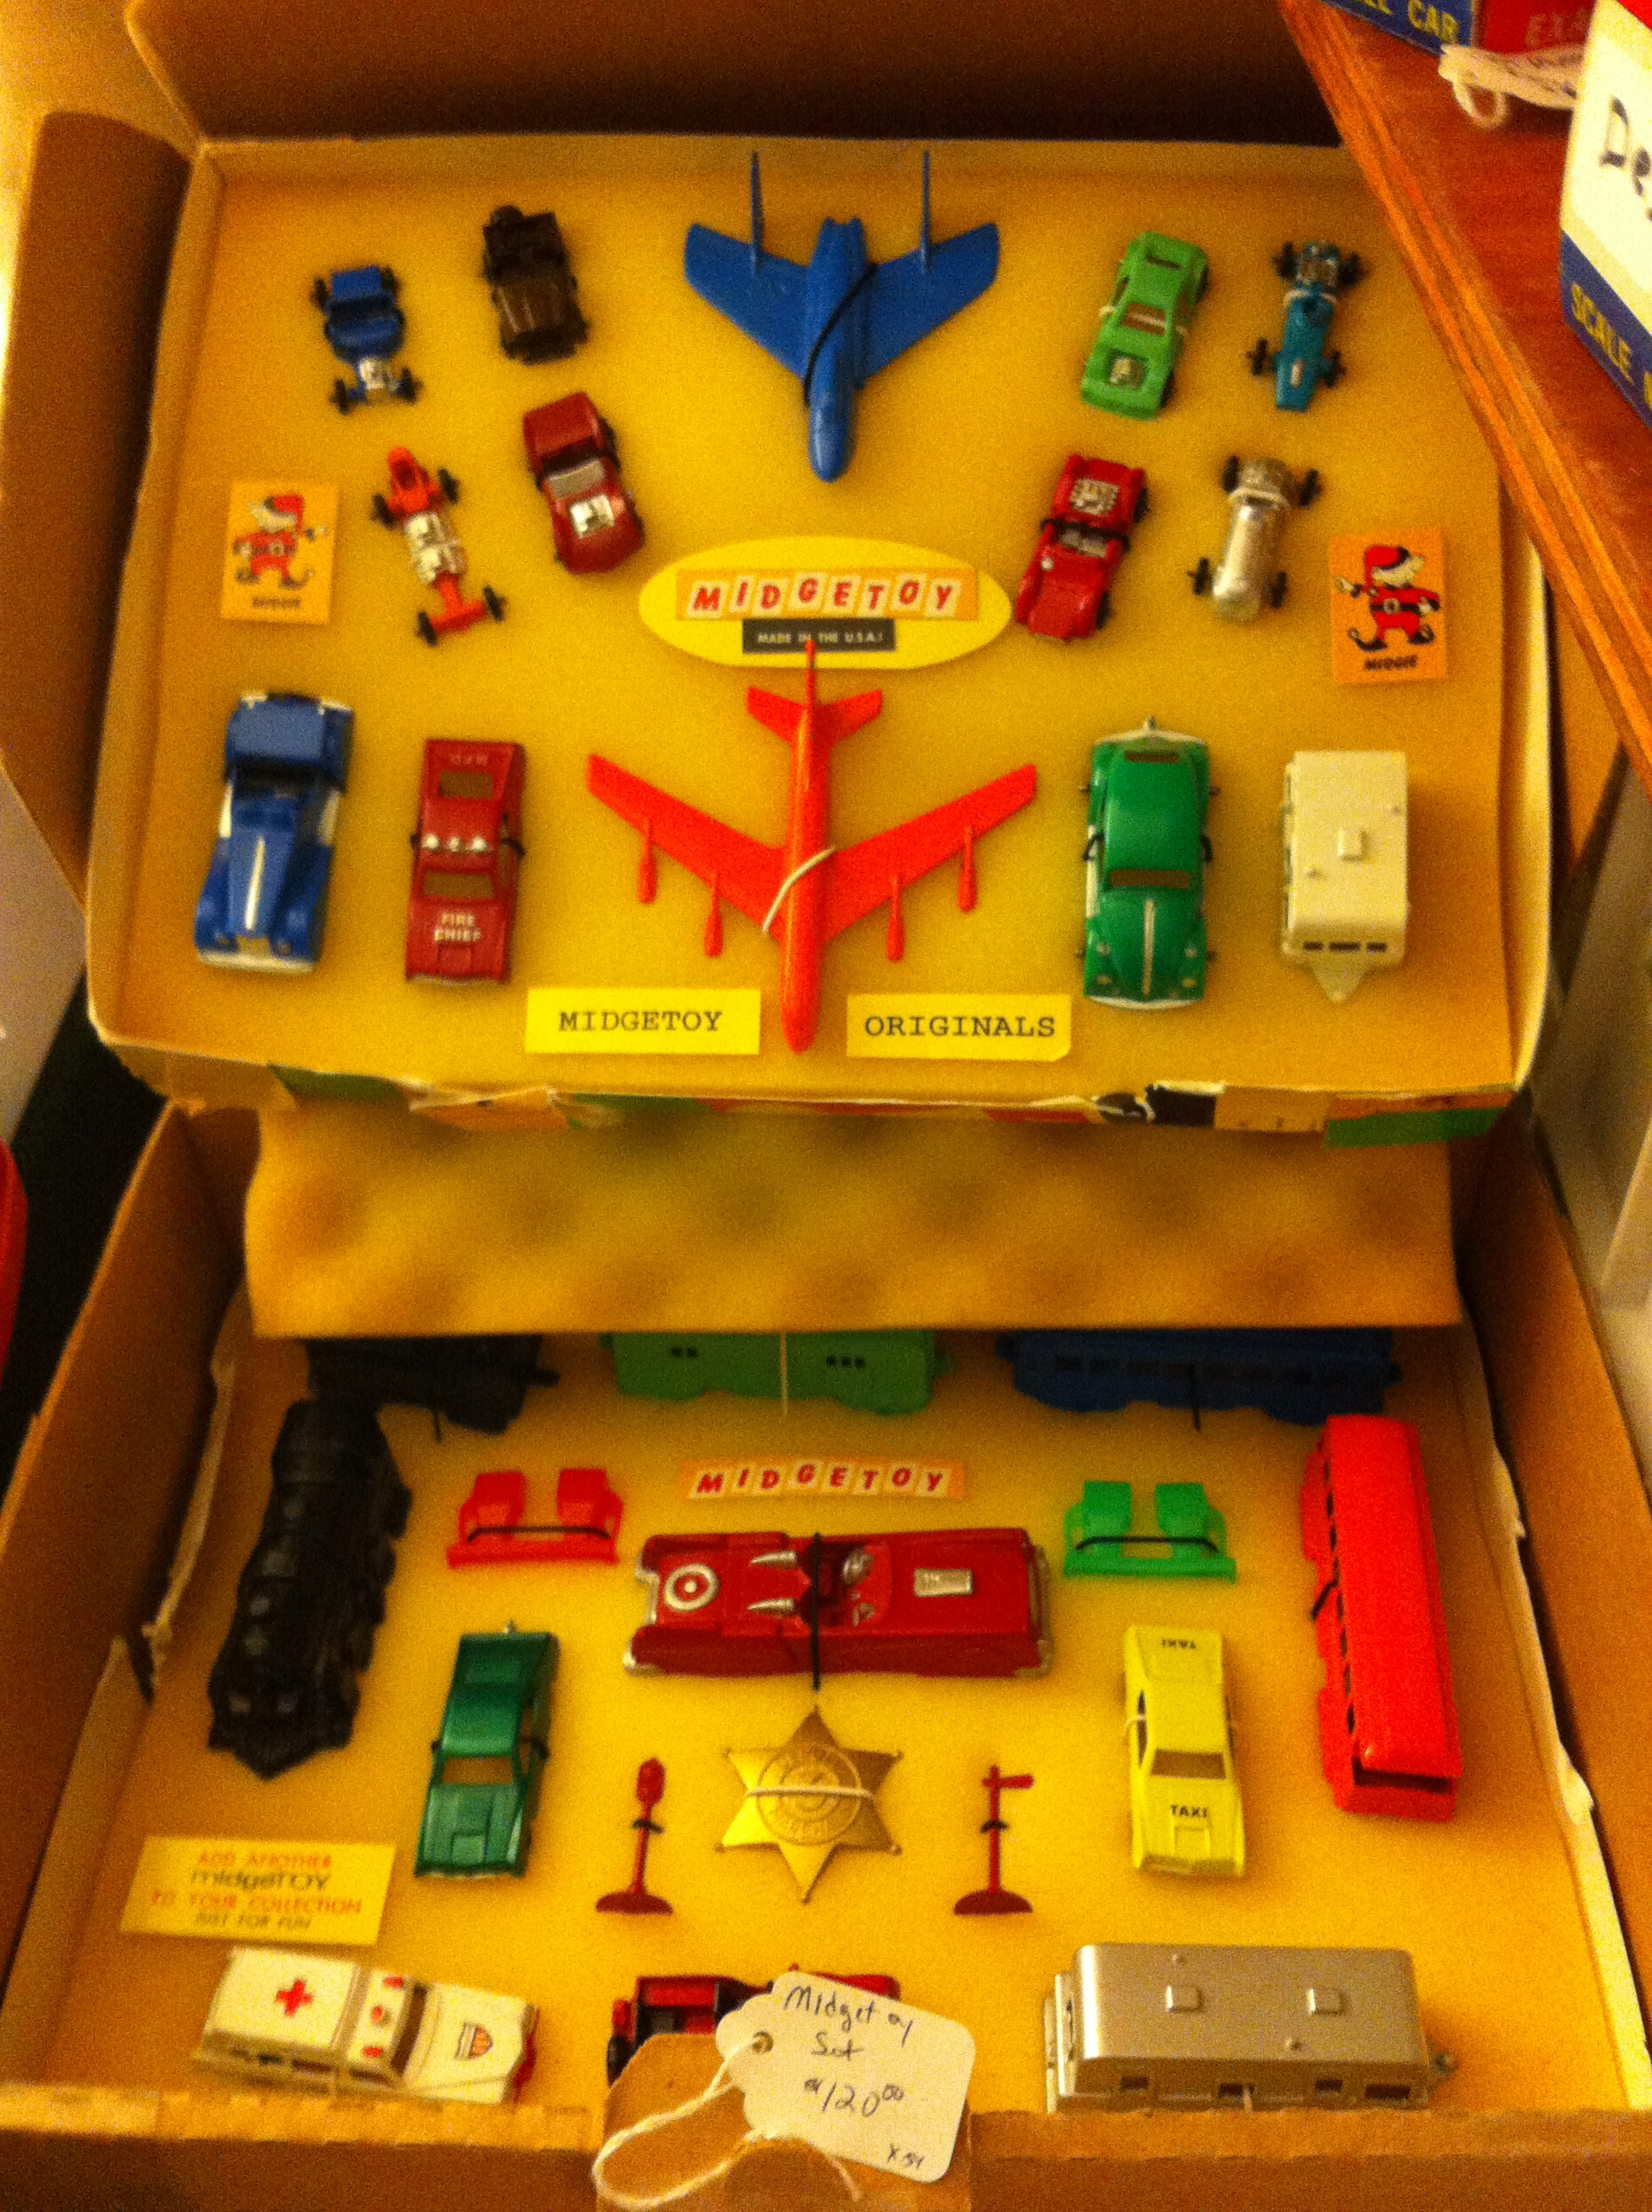 Midgetoys were among some of the unusual toys spied at toy show